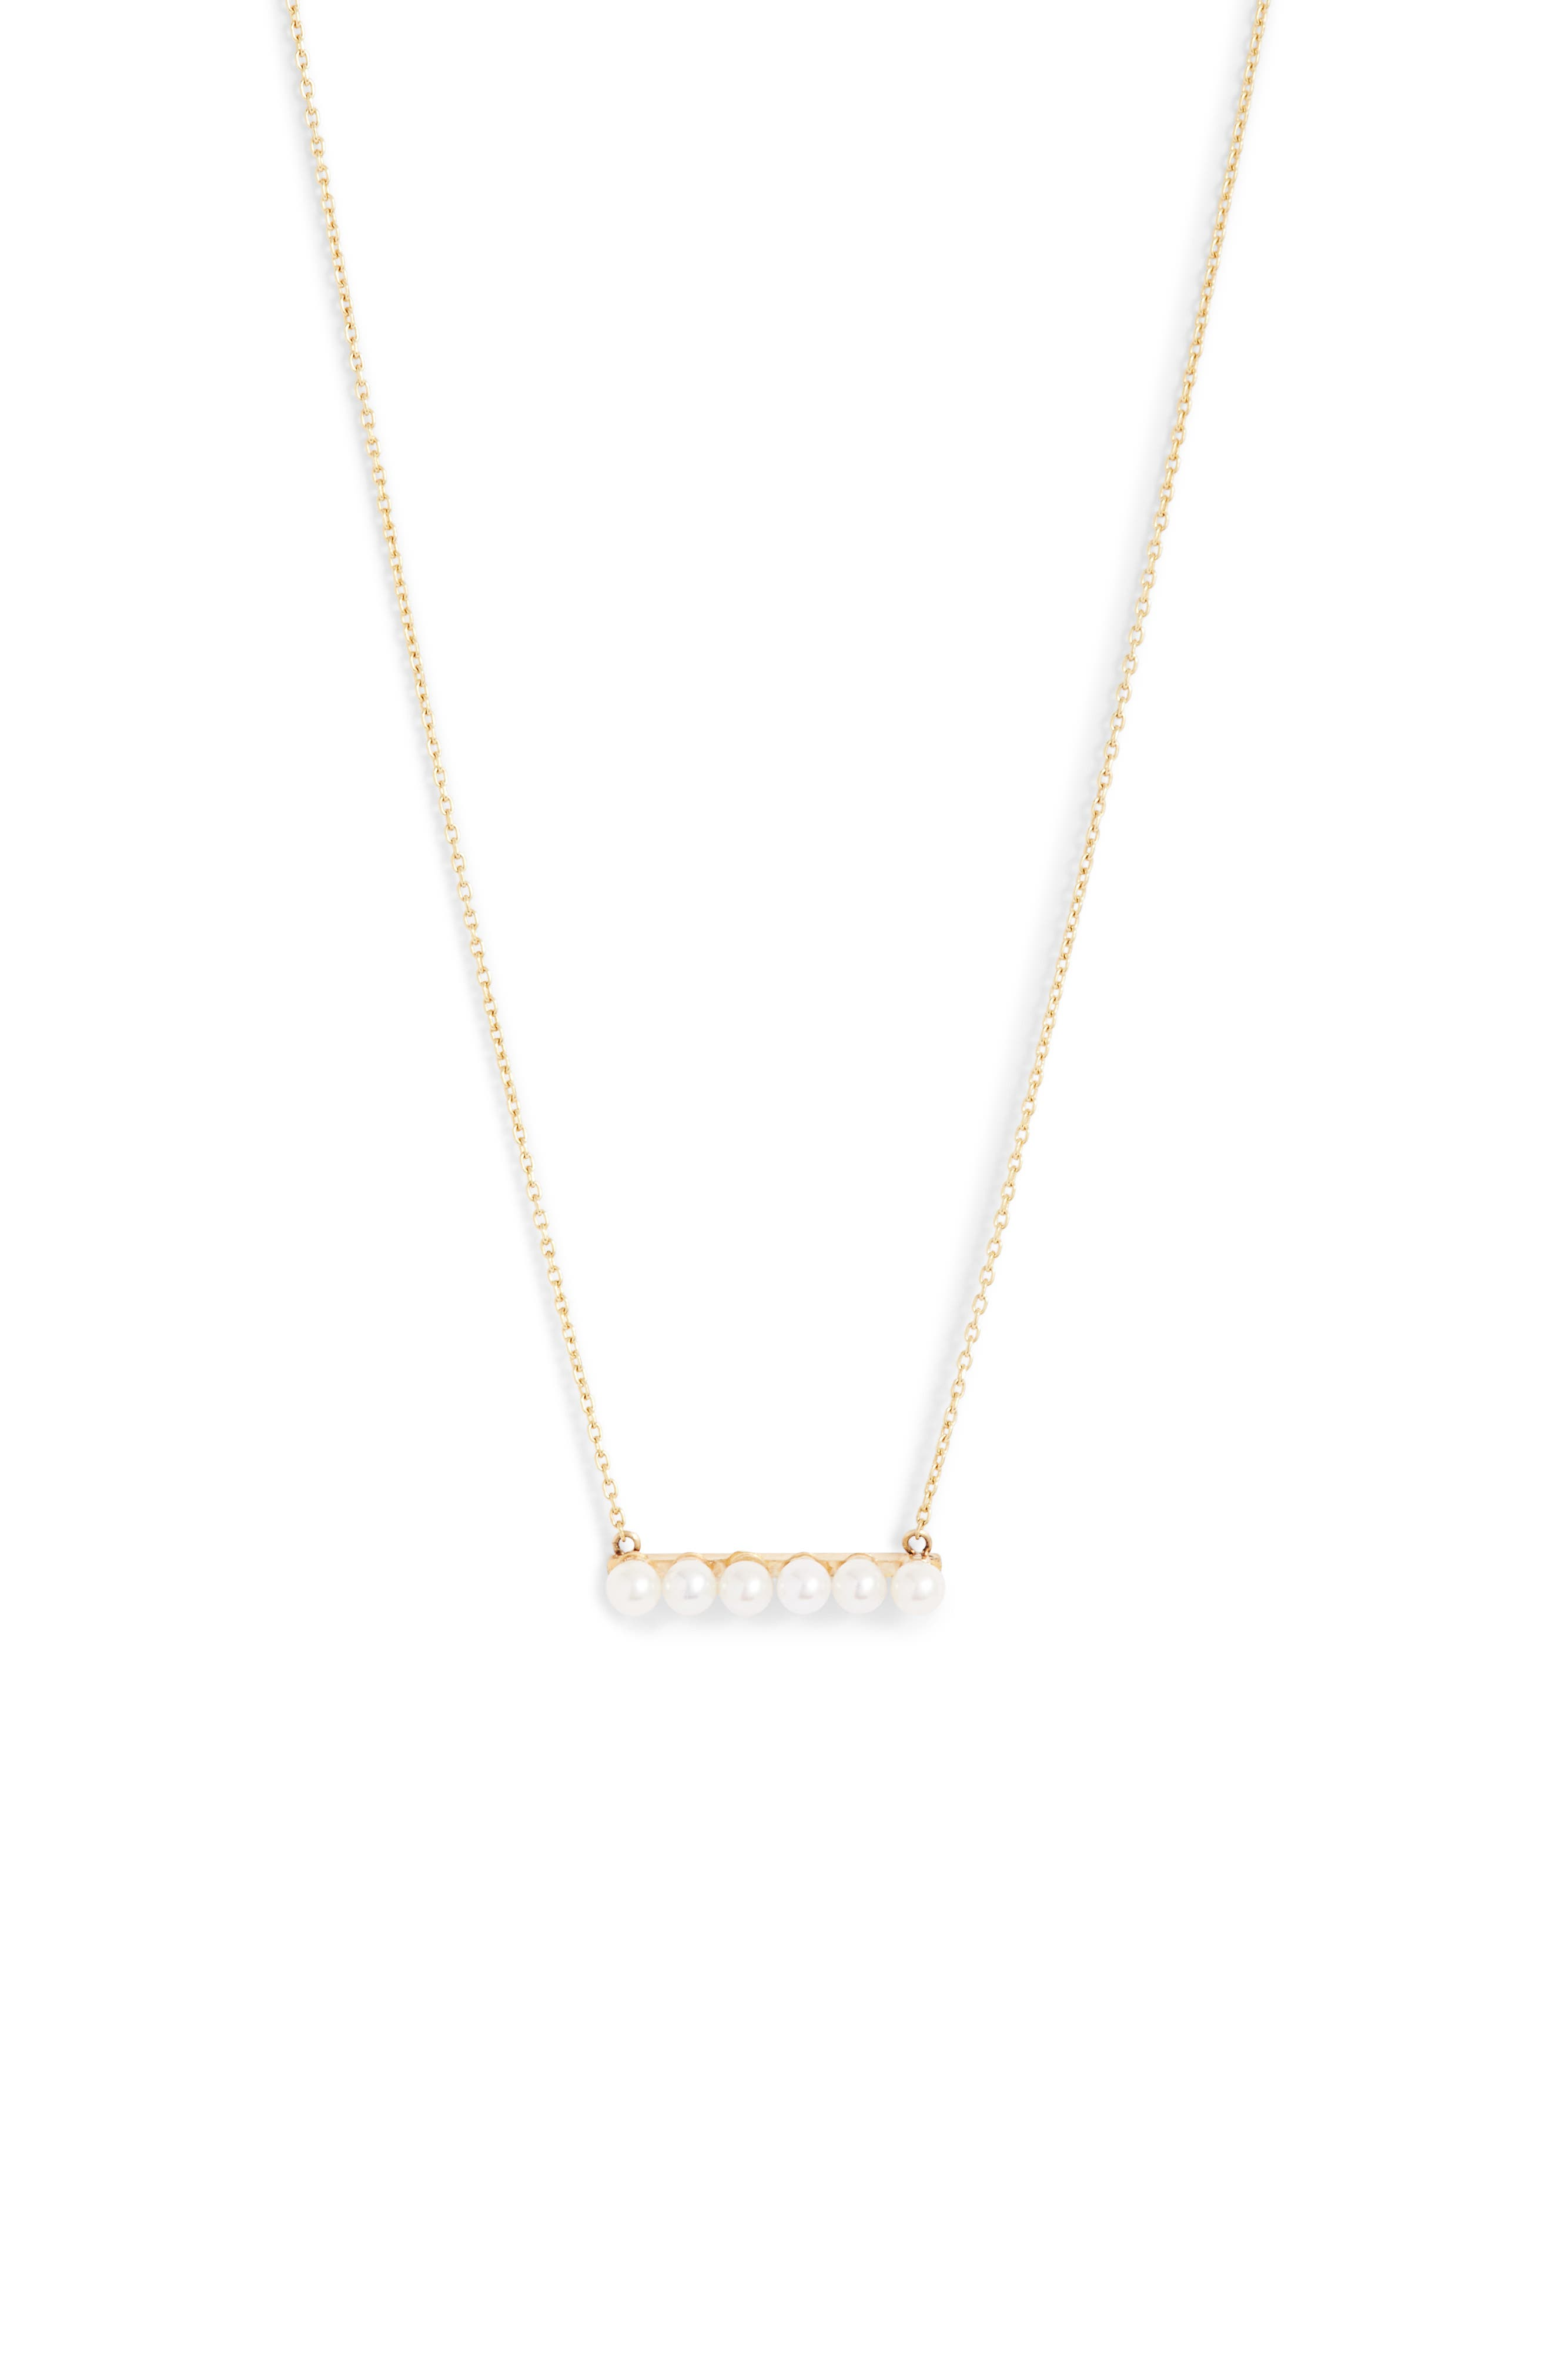 Cultured Baby Pearl Bar Necklace,                         Main,                         color, YELLOW GOLD/ WHITE PEARL